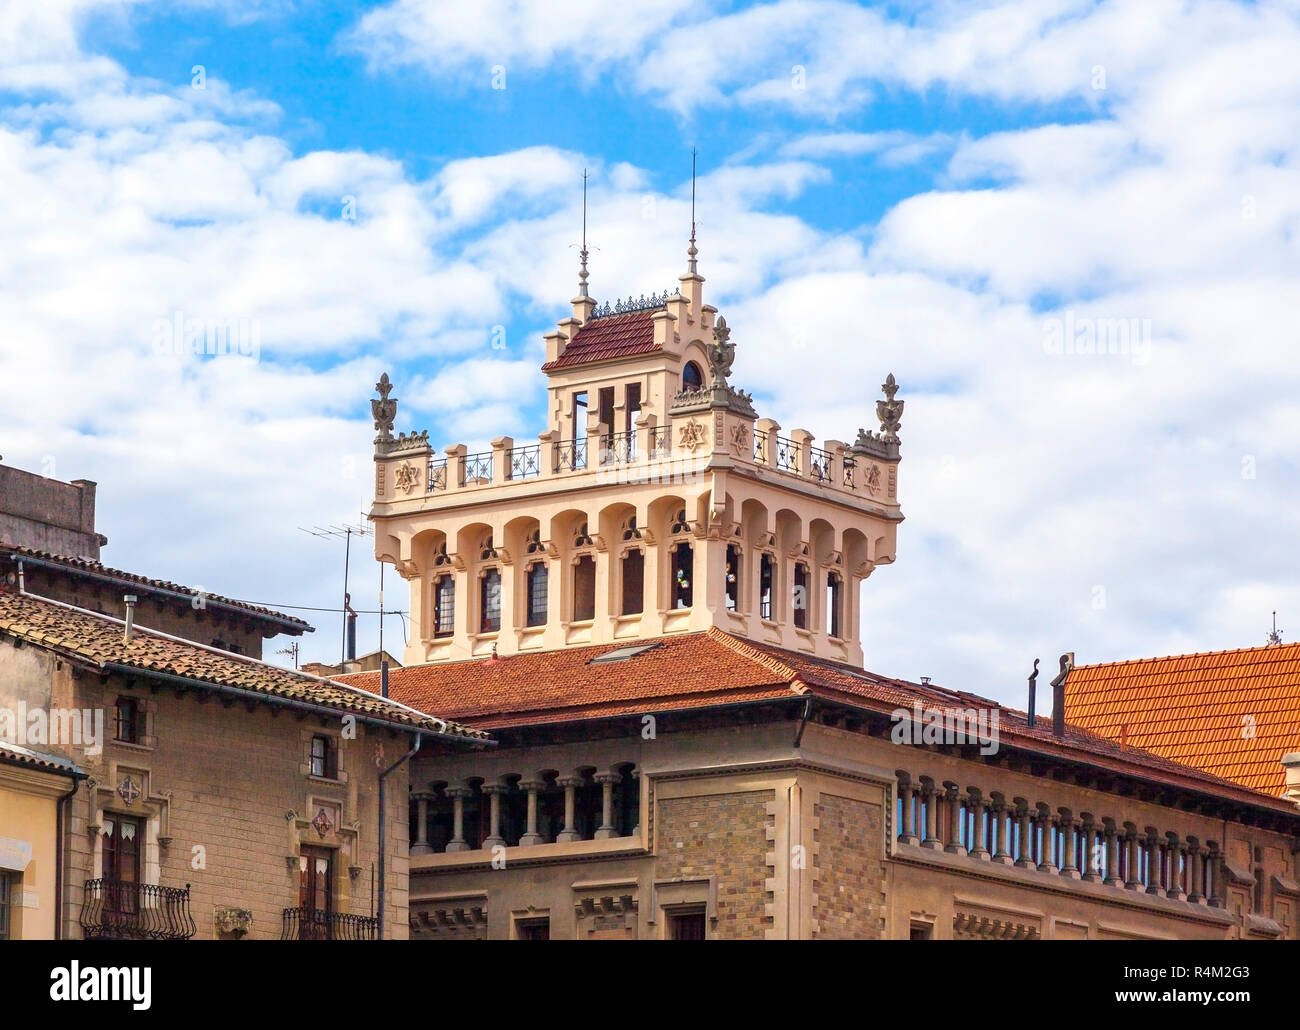 Architectural detail of a building on the main square of Vic, Catalonia, Spain - Stock Image